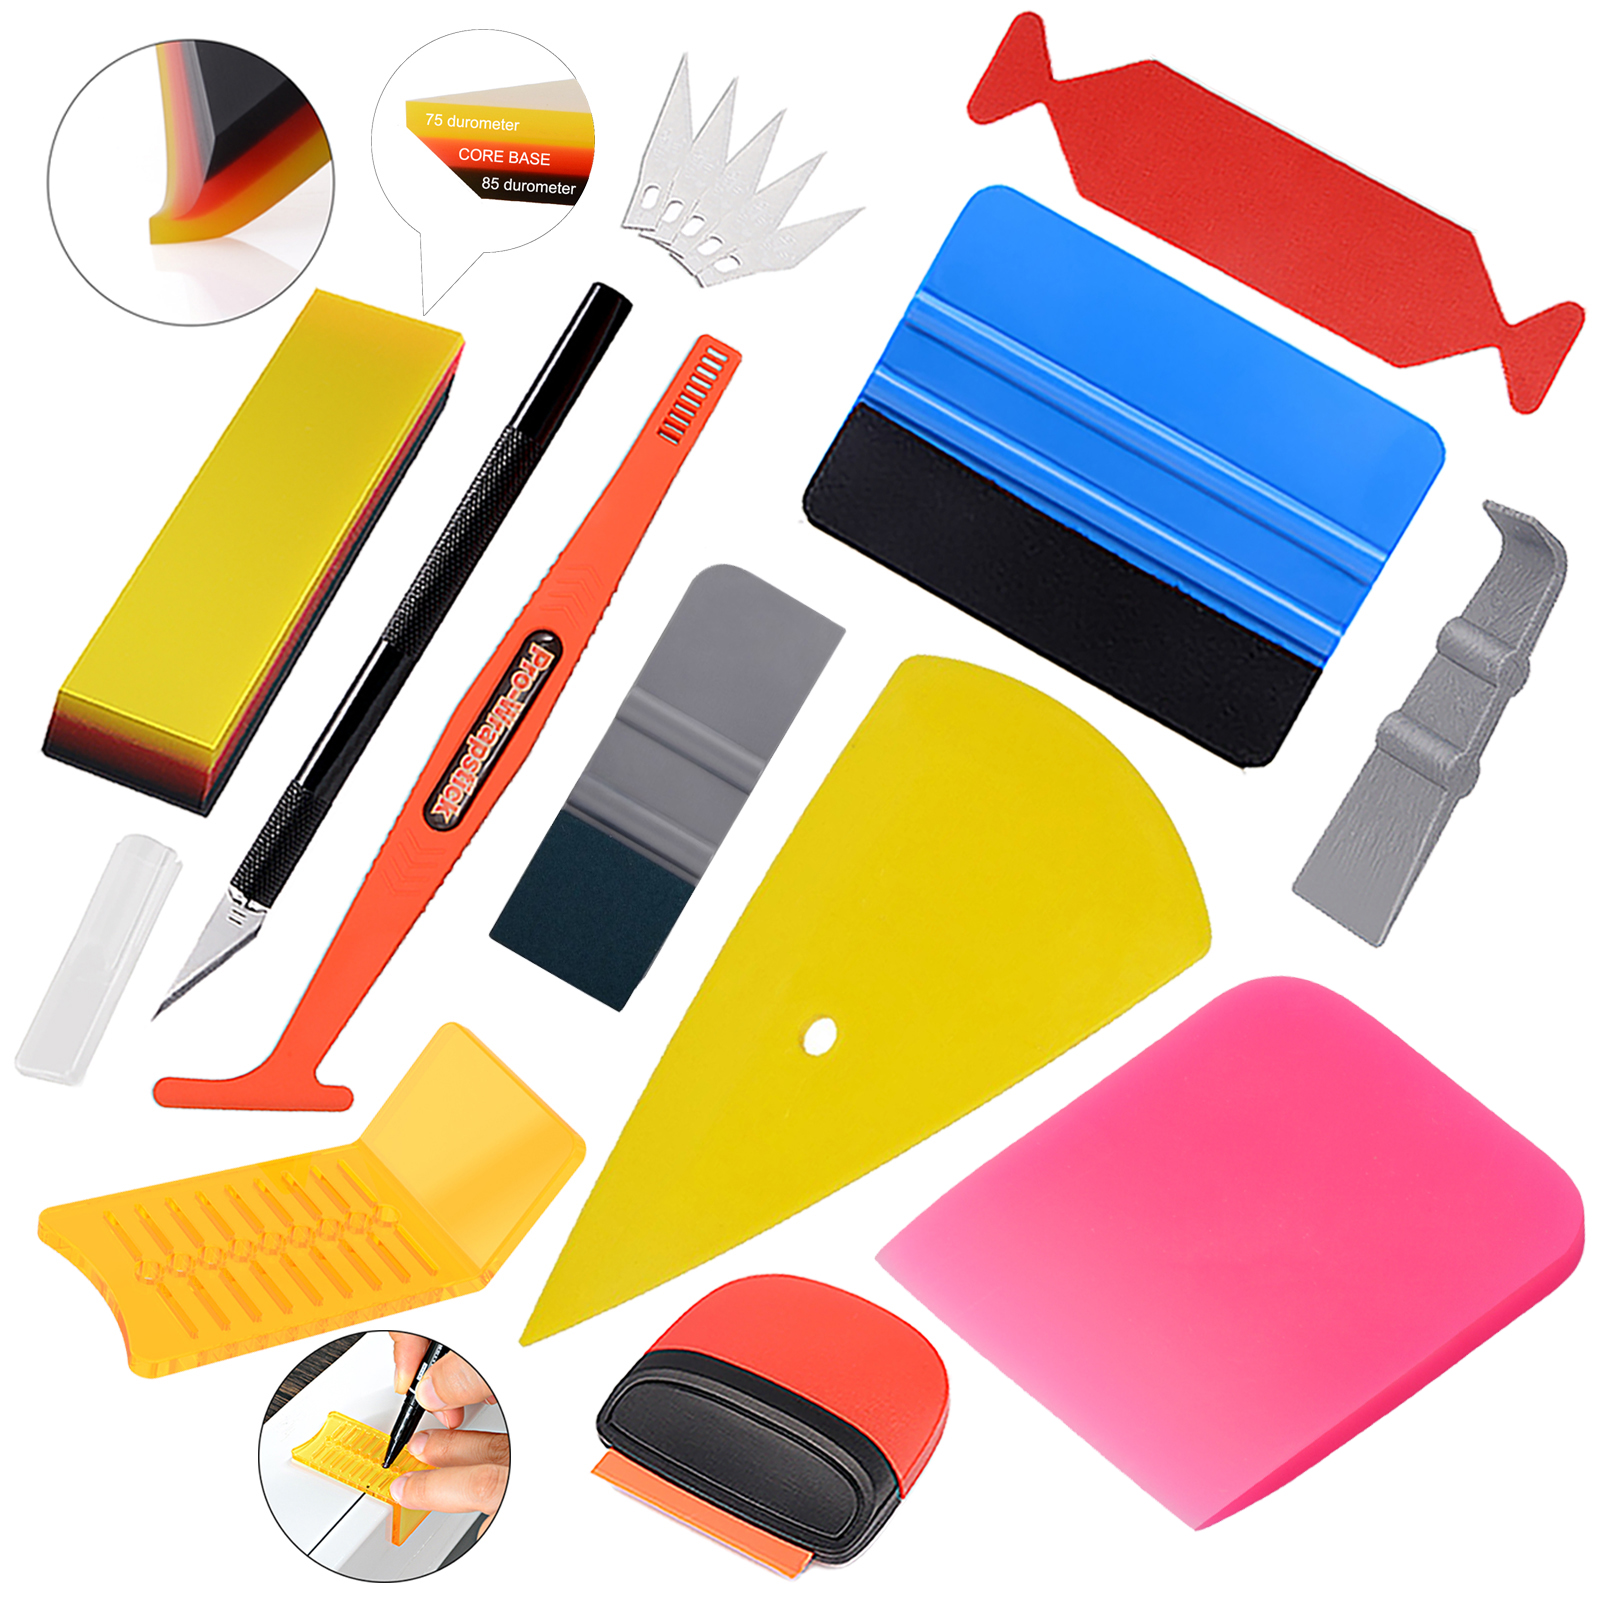 EHDIS Vinyl Wrap Film Tools Kit Window Tint Carbon Fiber Decal Knife Cutter Car Wrapping Sticker Rubber Scraper Magnet Squeegee